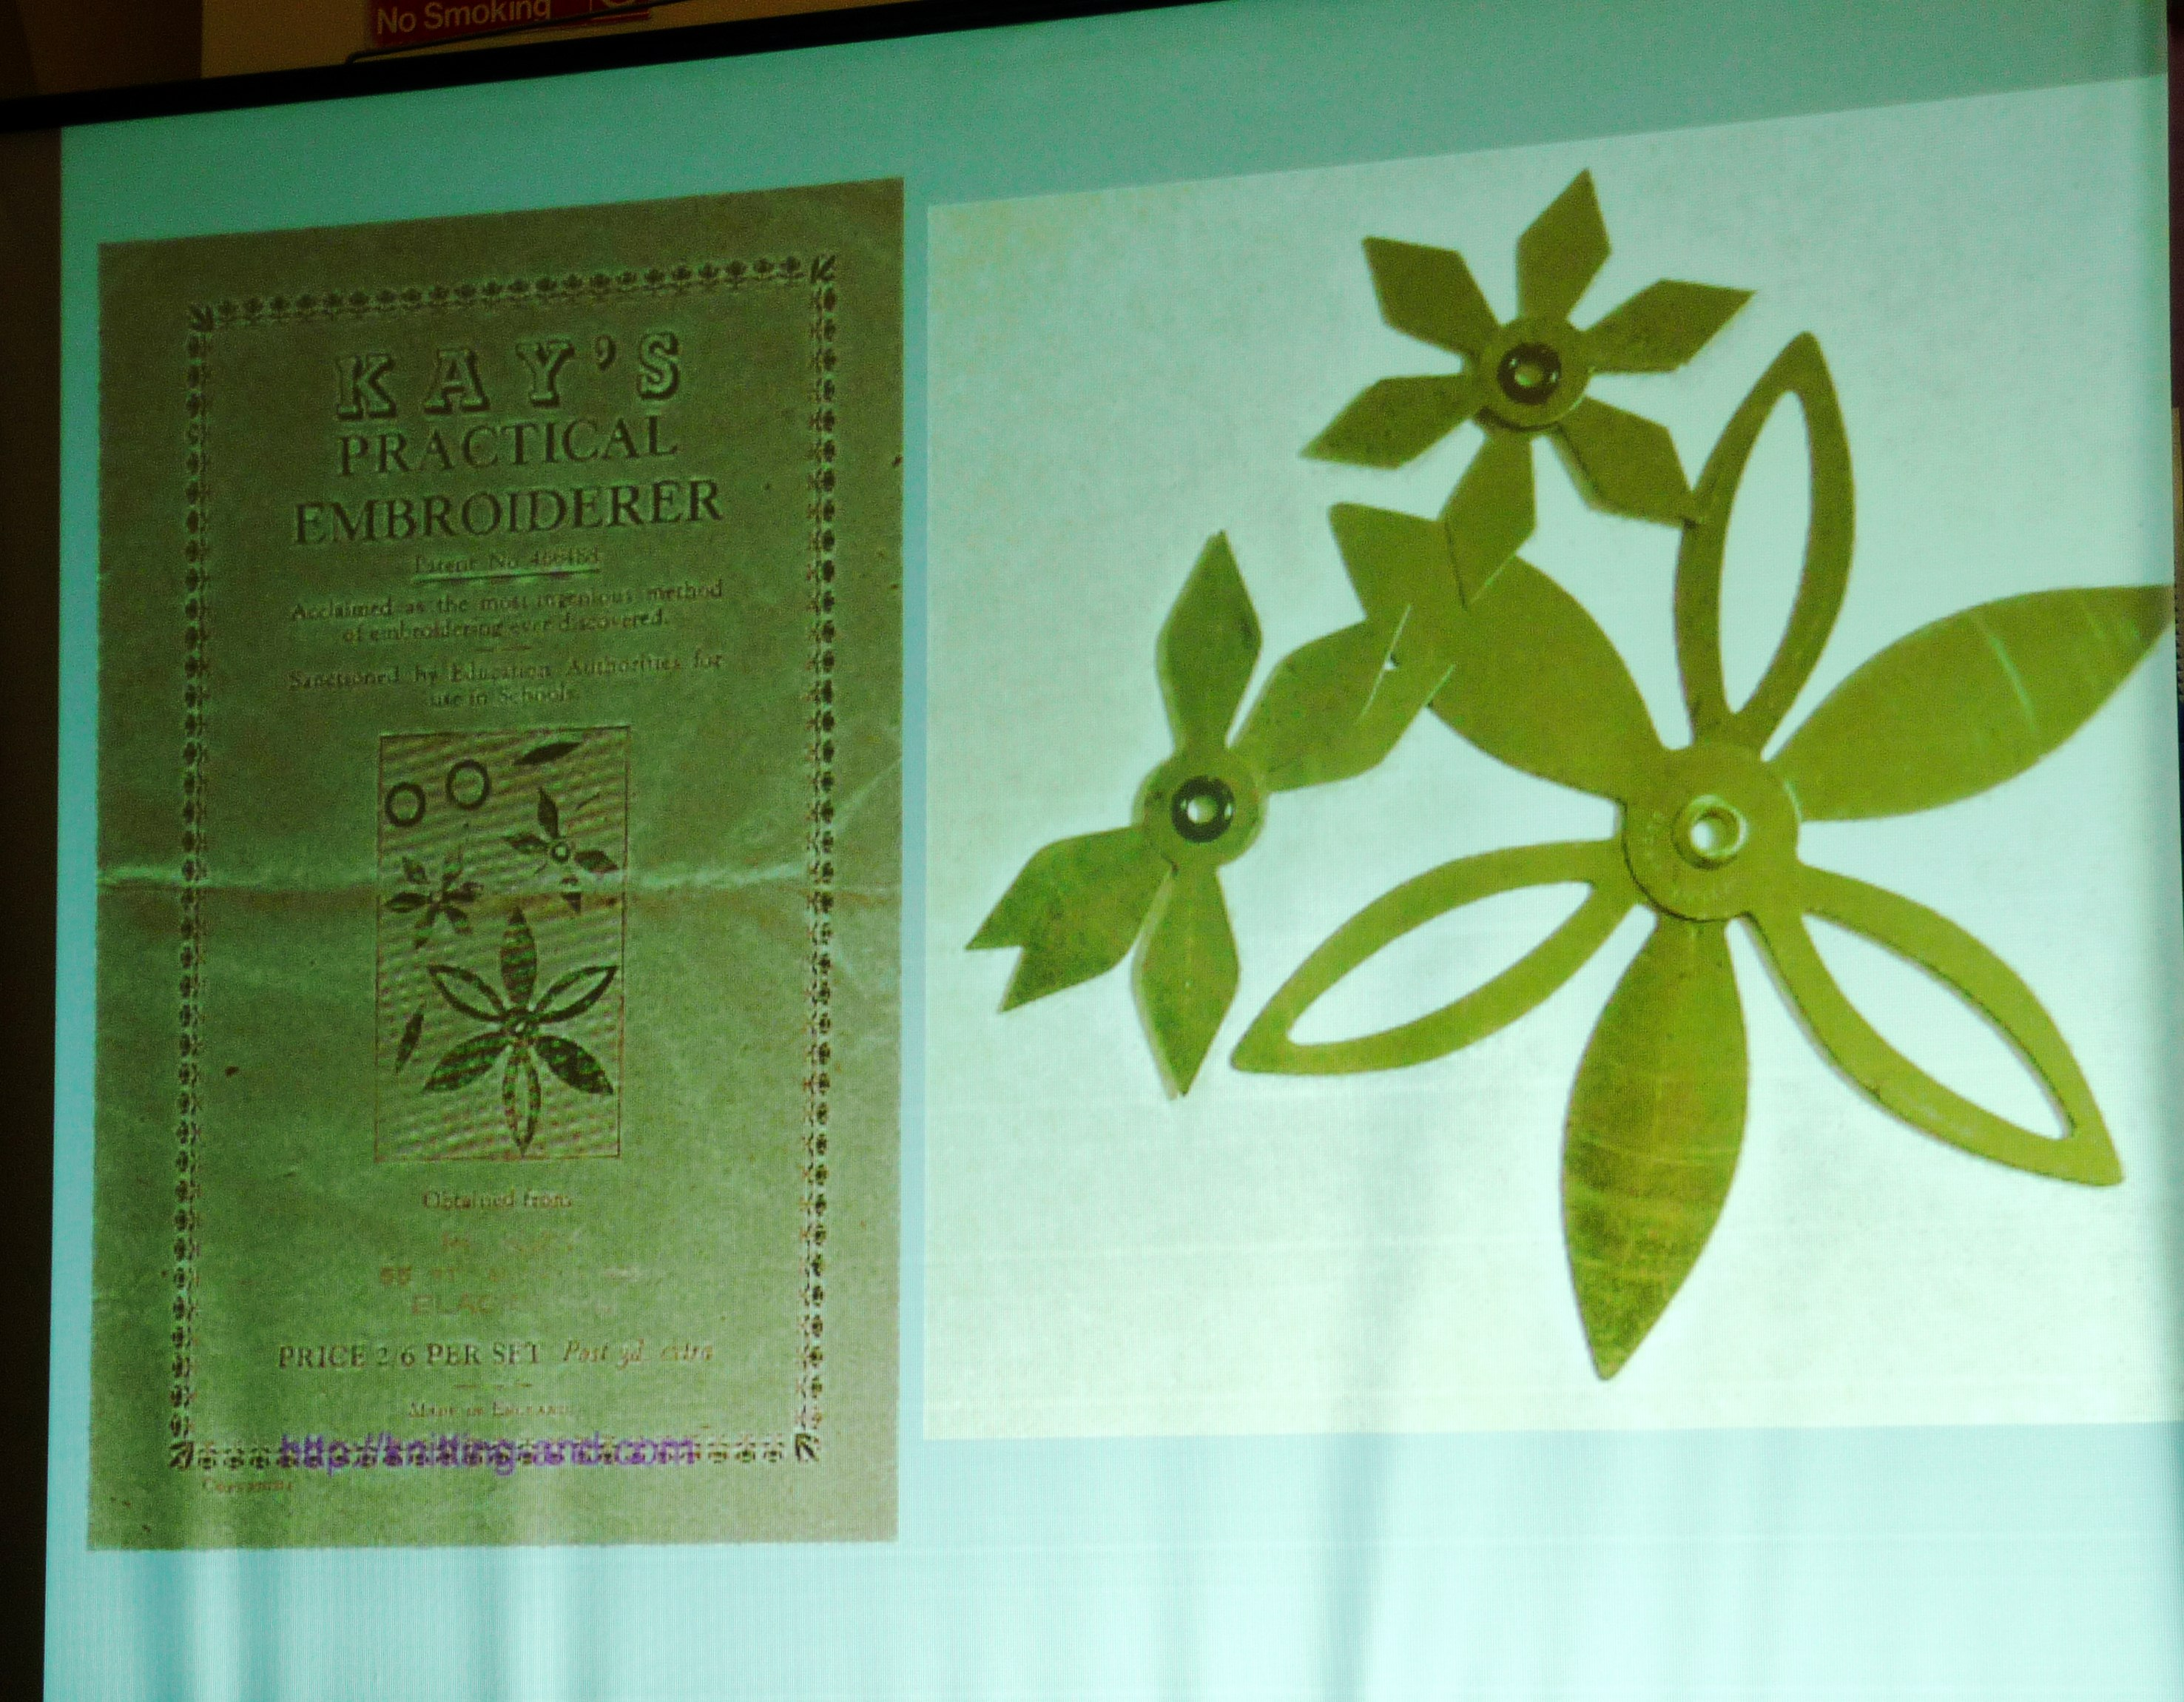 one of Alice Colson's slides showing Kay's Practical Embroiderer